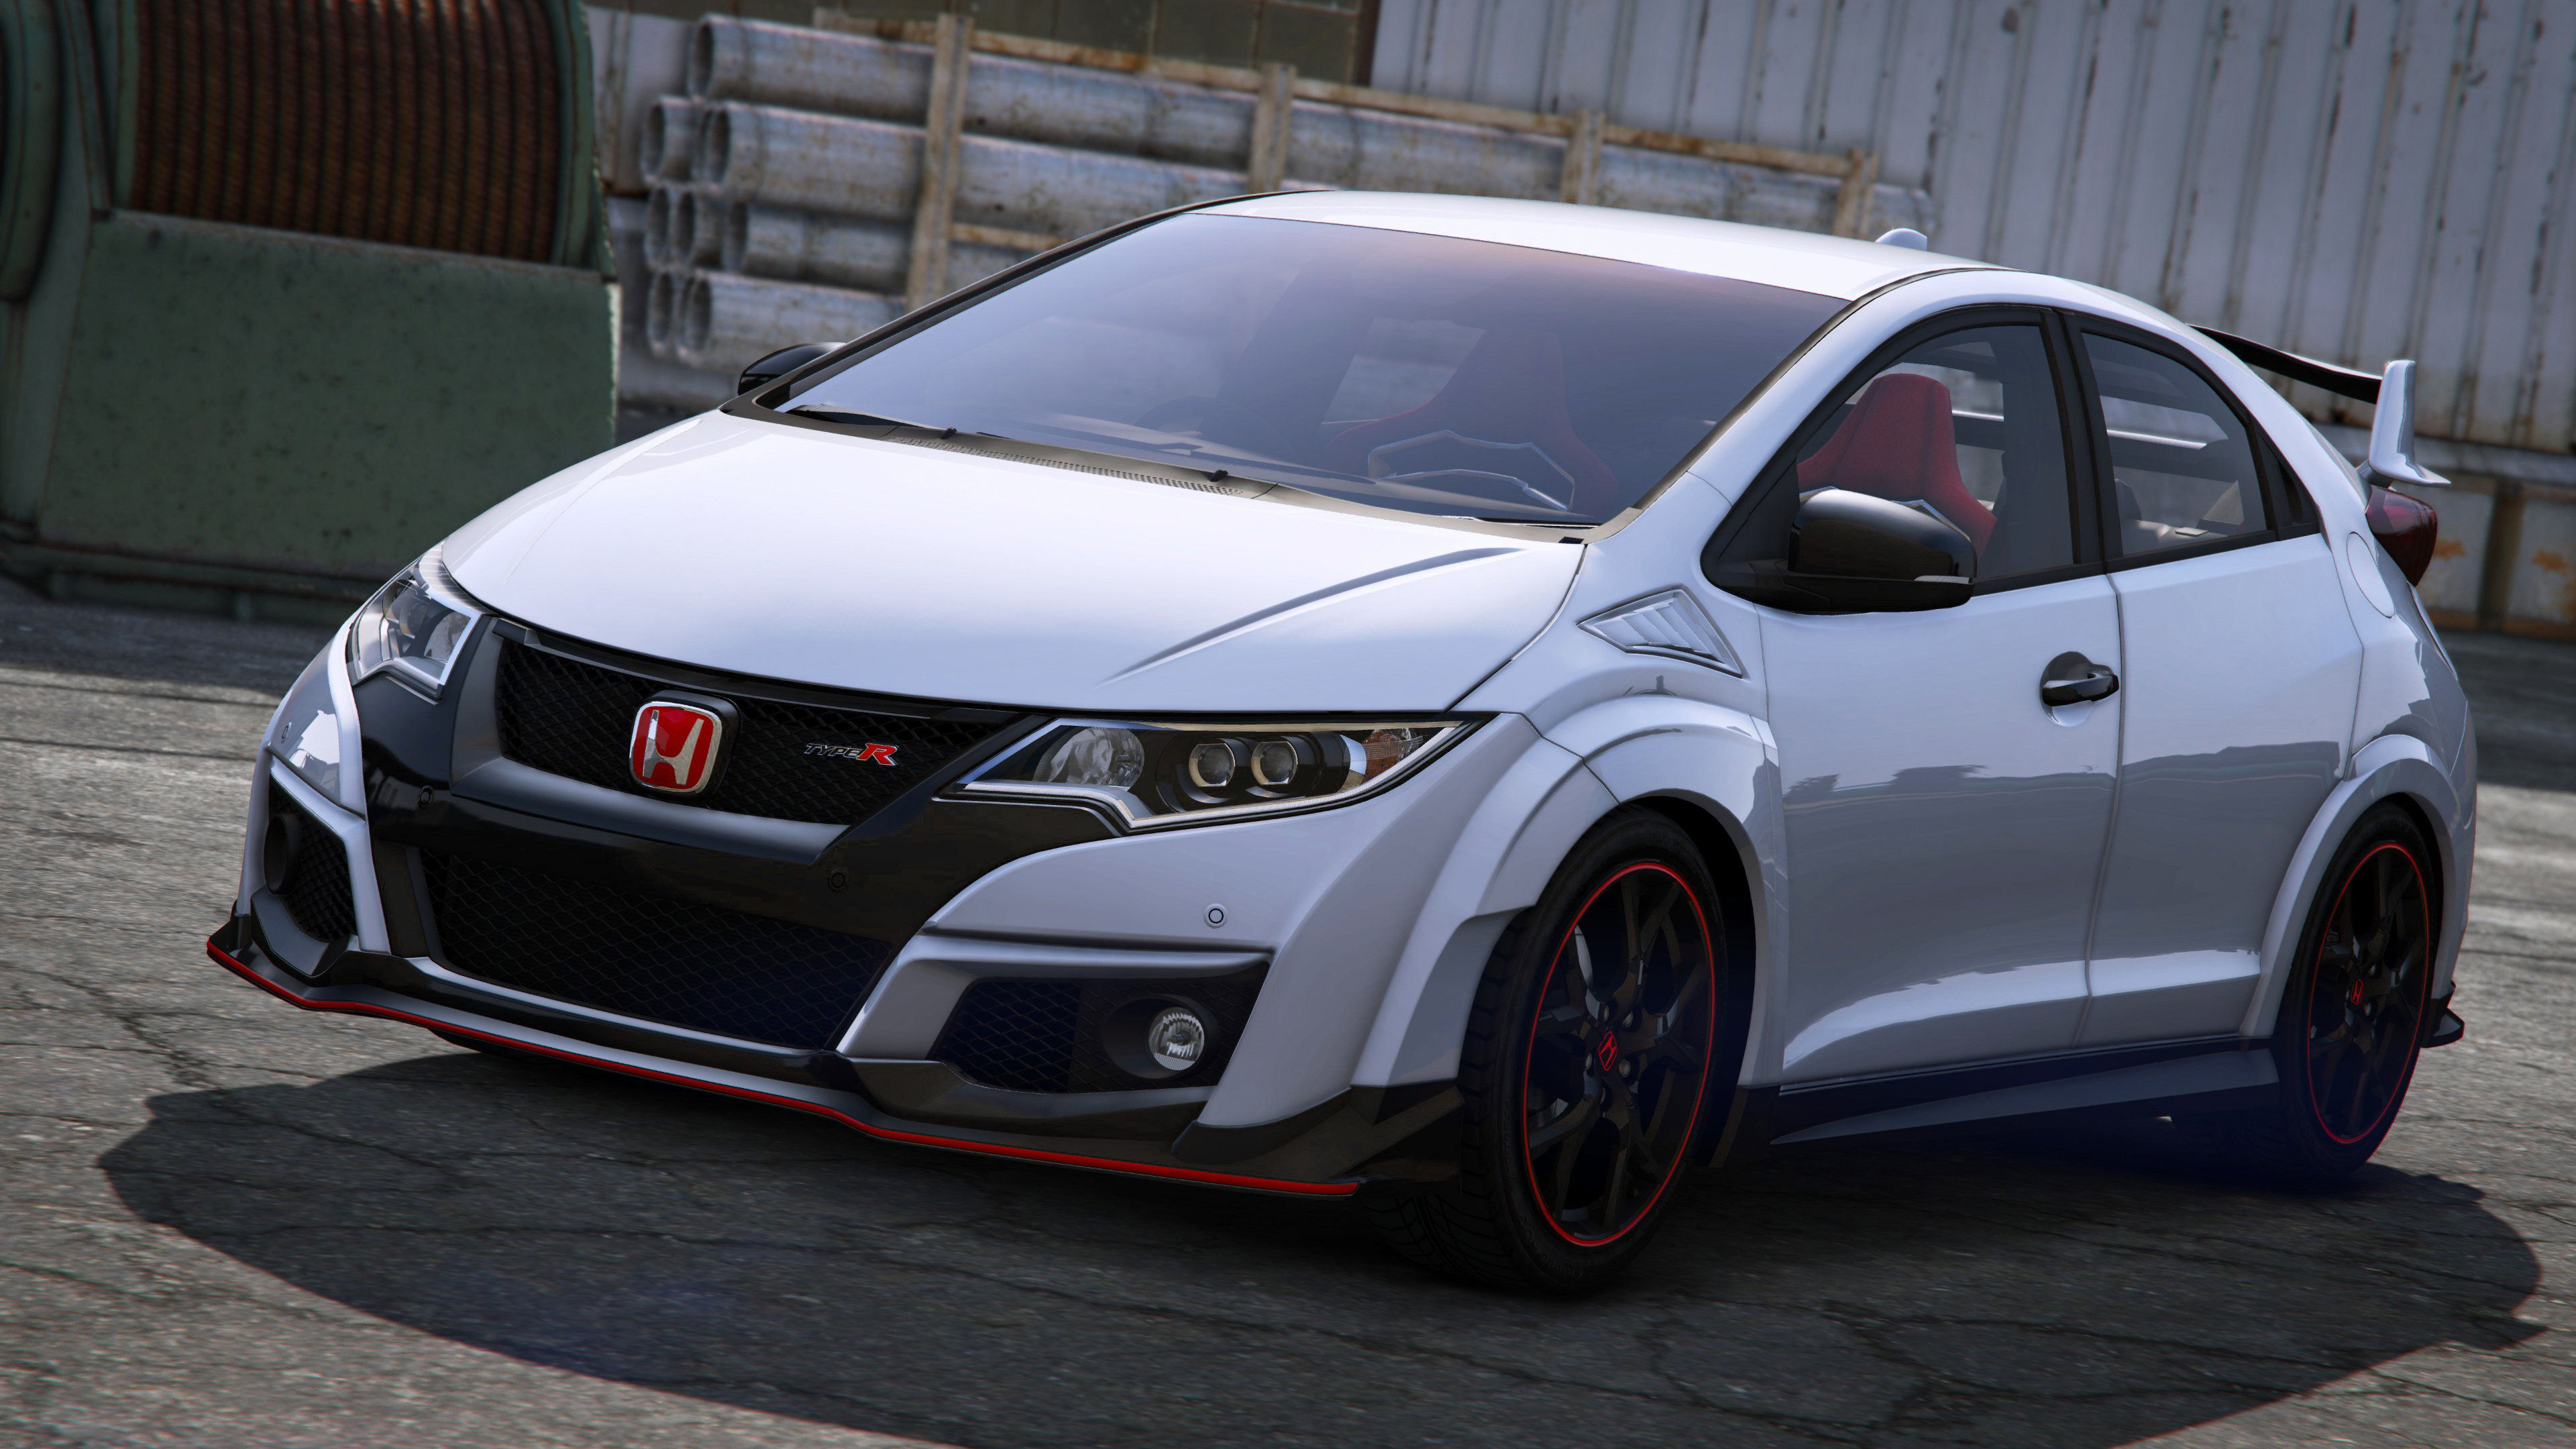 honda civic type r fk2 2015 v hicules t l chargements gta 5. Black Bedroom Furniture Sets. Home Design Ideas